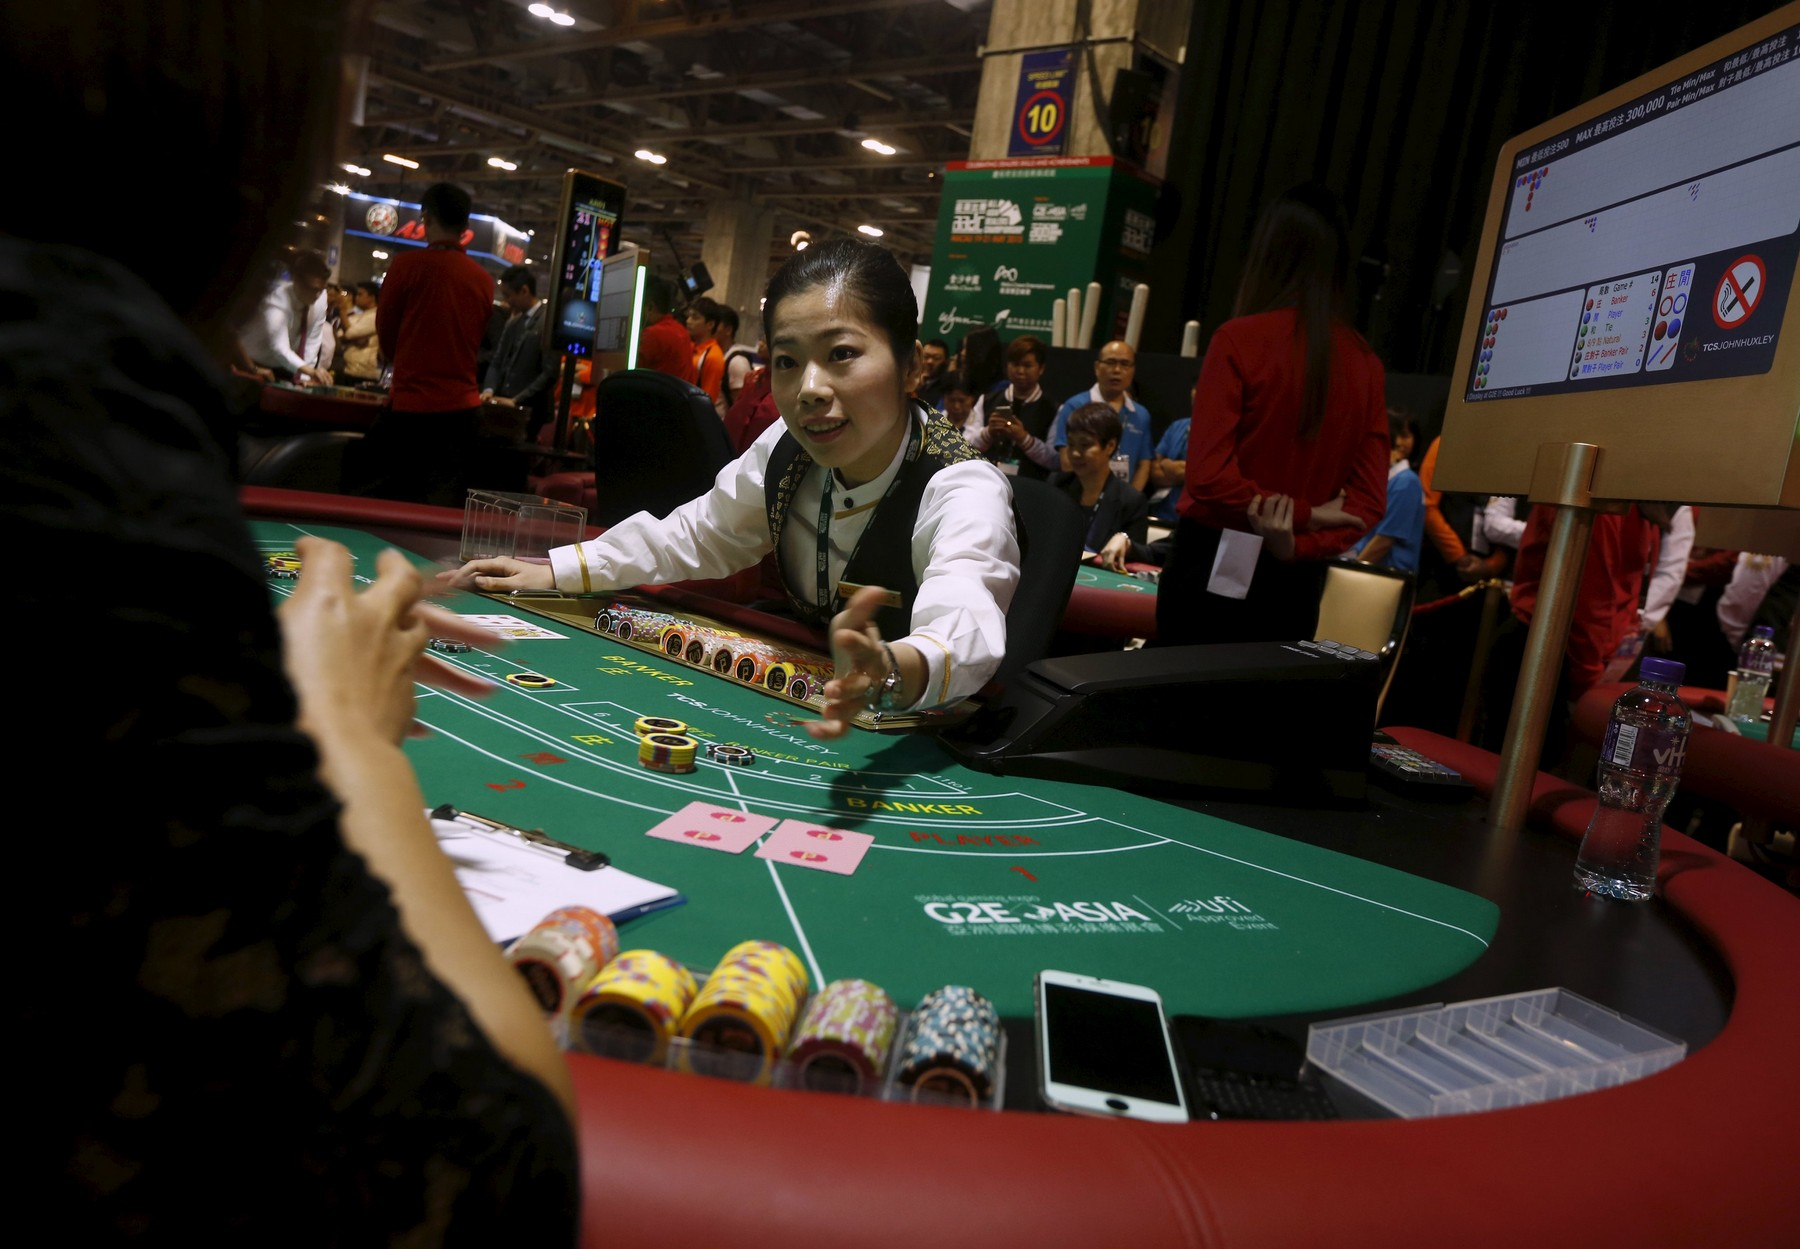 Macau gaming expo to put more focus on non-gaming